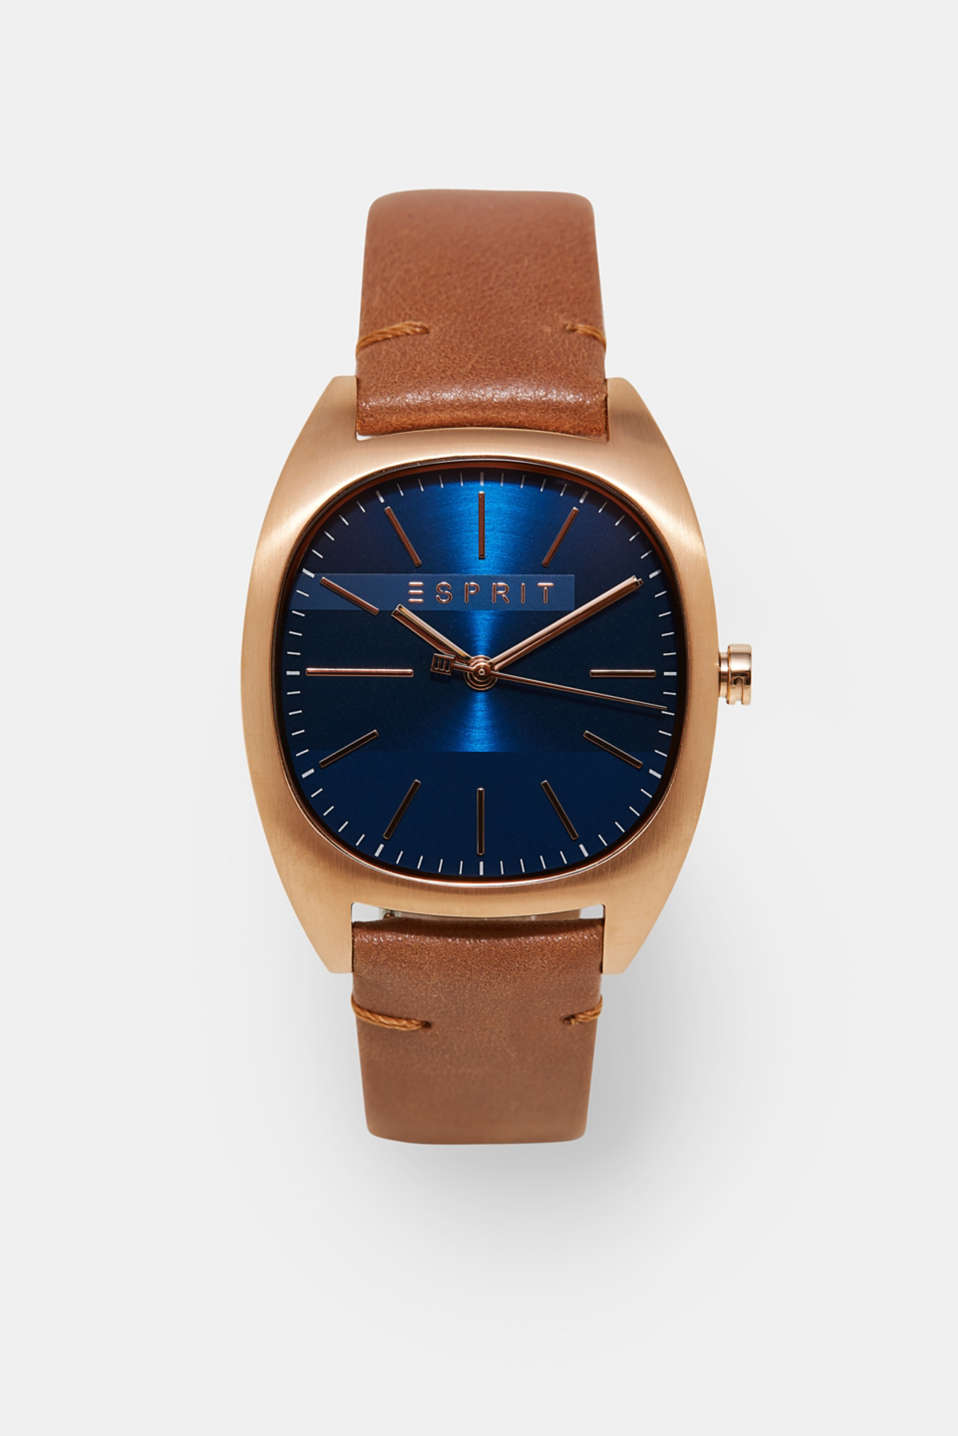 Esprit - Classic watch for men with leather strap